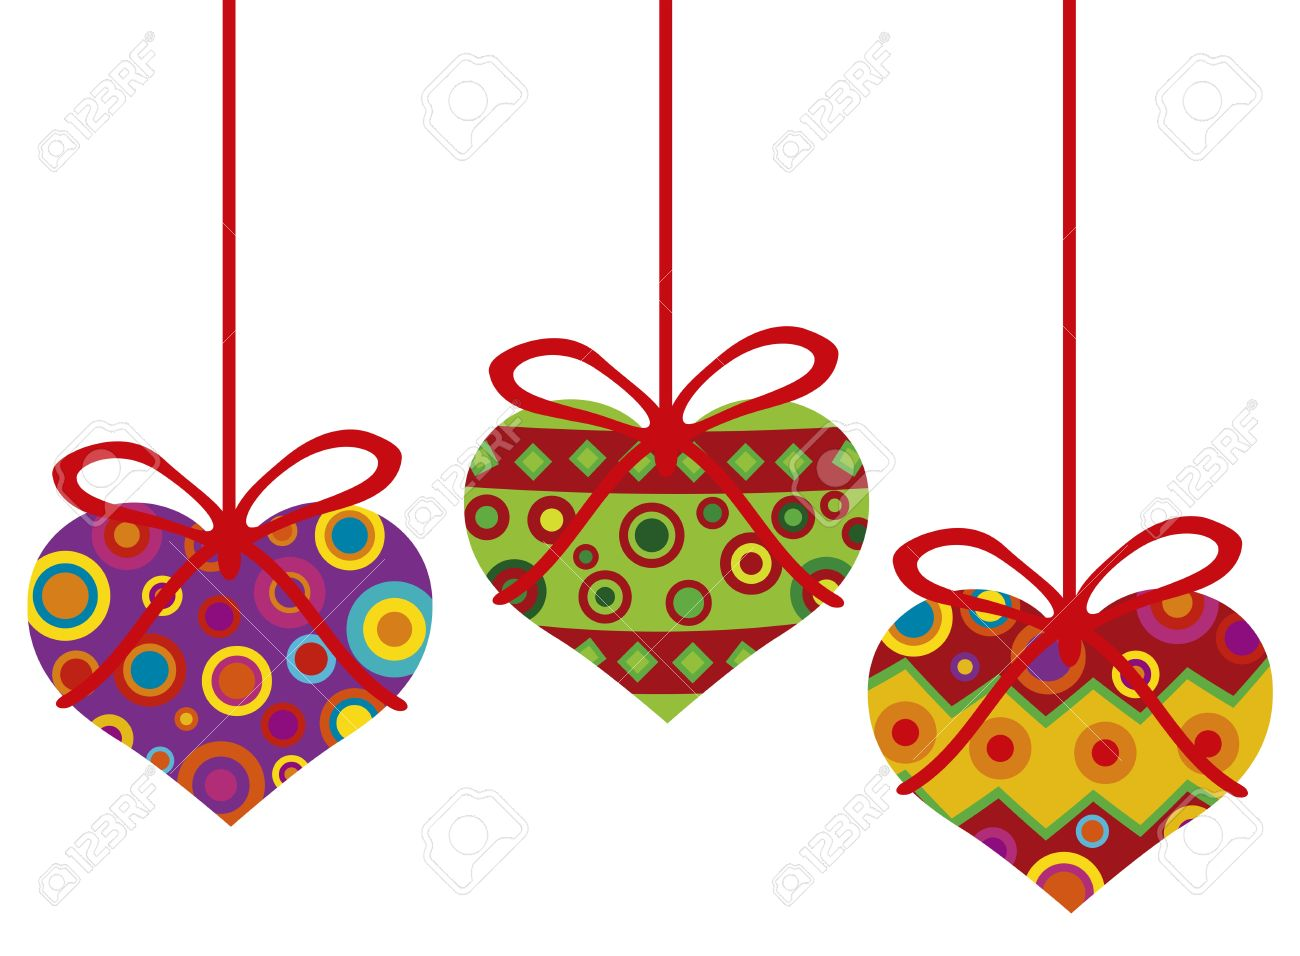 Happy Valentines Day Hanging Heart Shape Christmas Tree Ornaments.